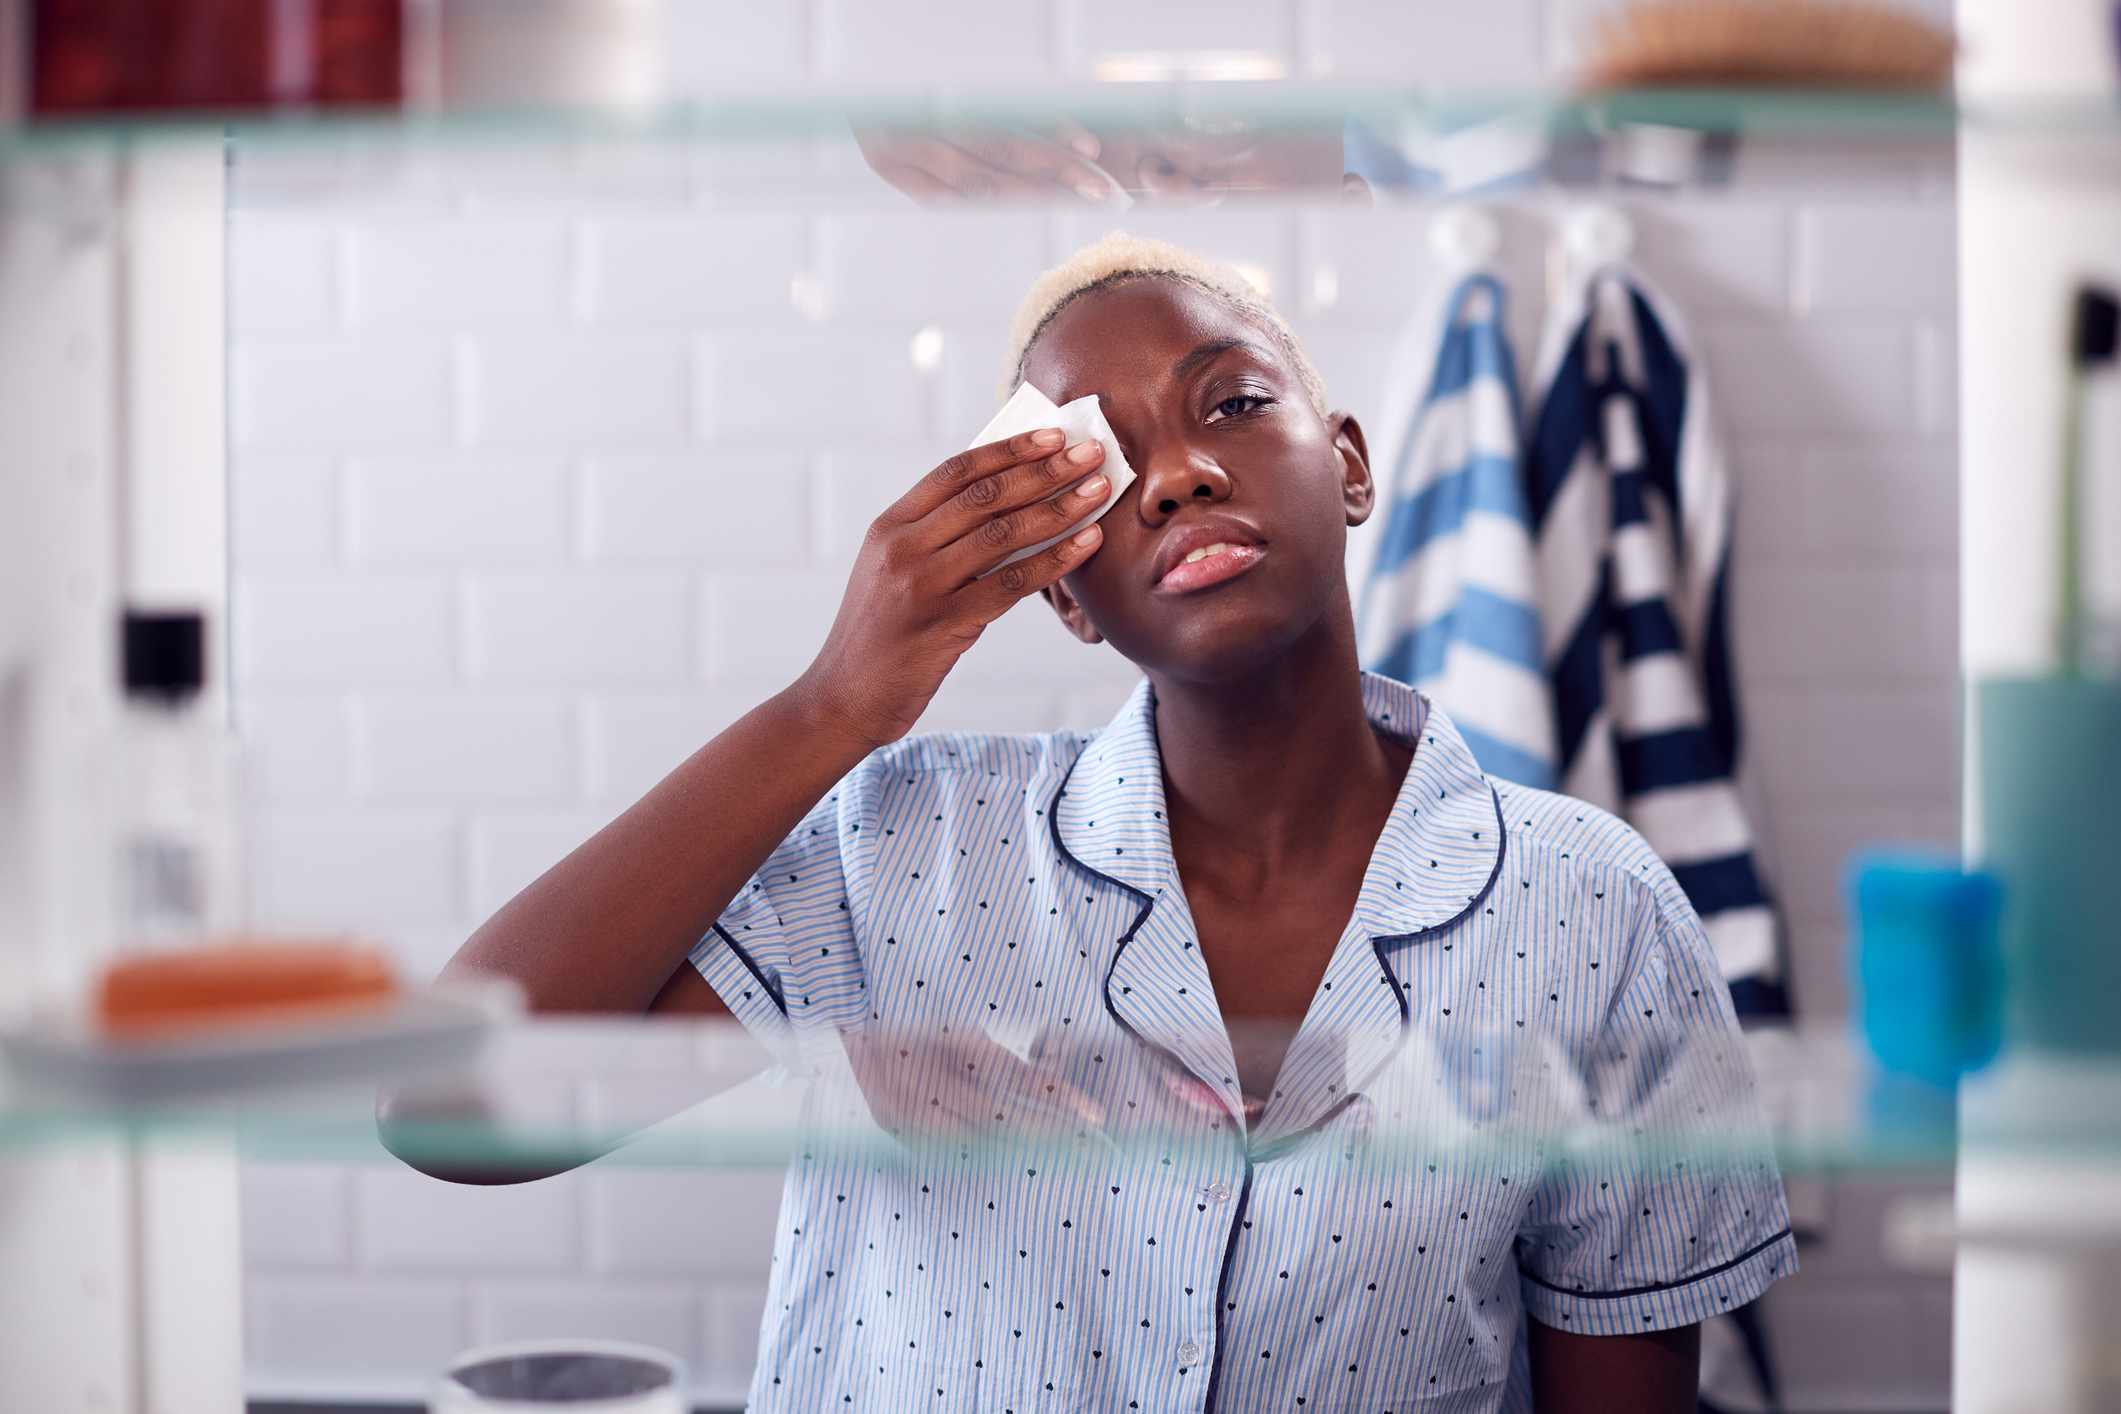 A young black woman cleans her face off looking in the bathroom cabinet.